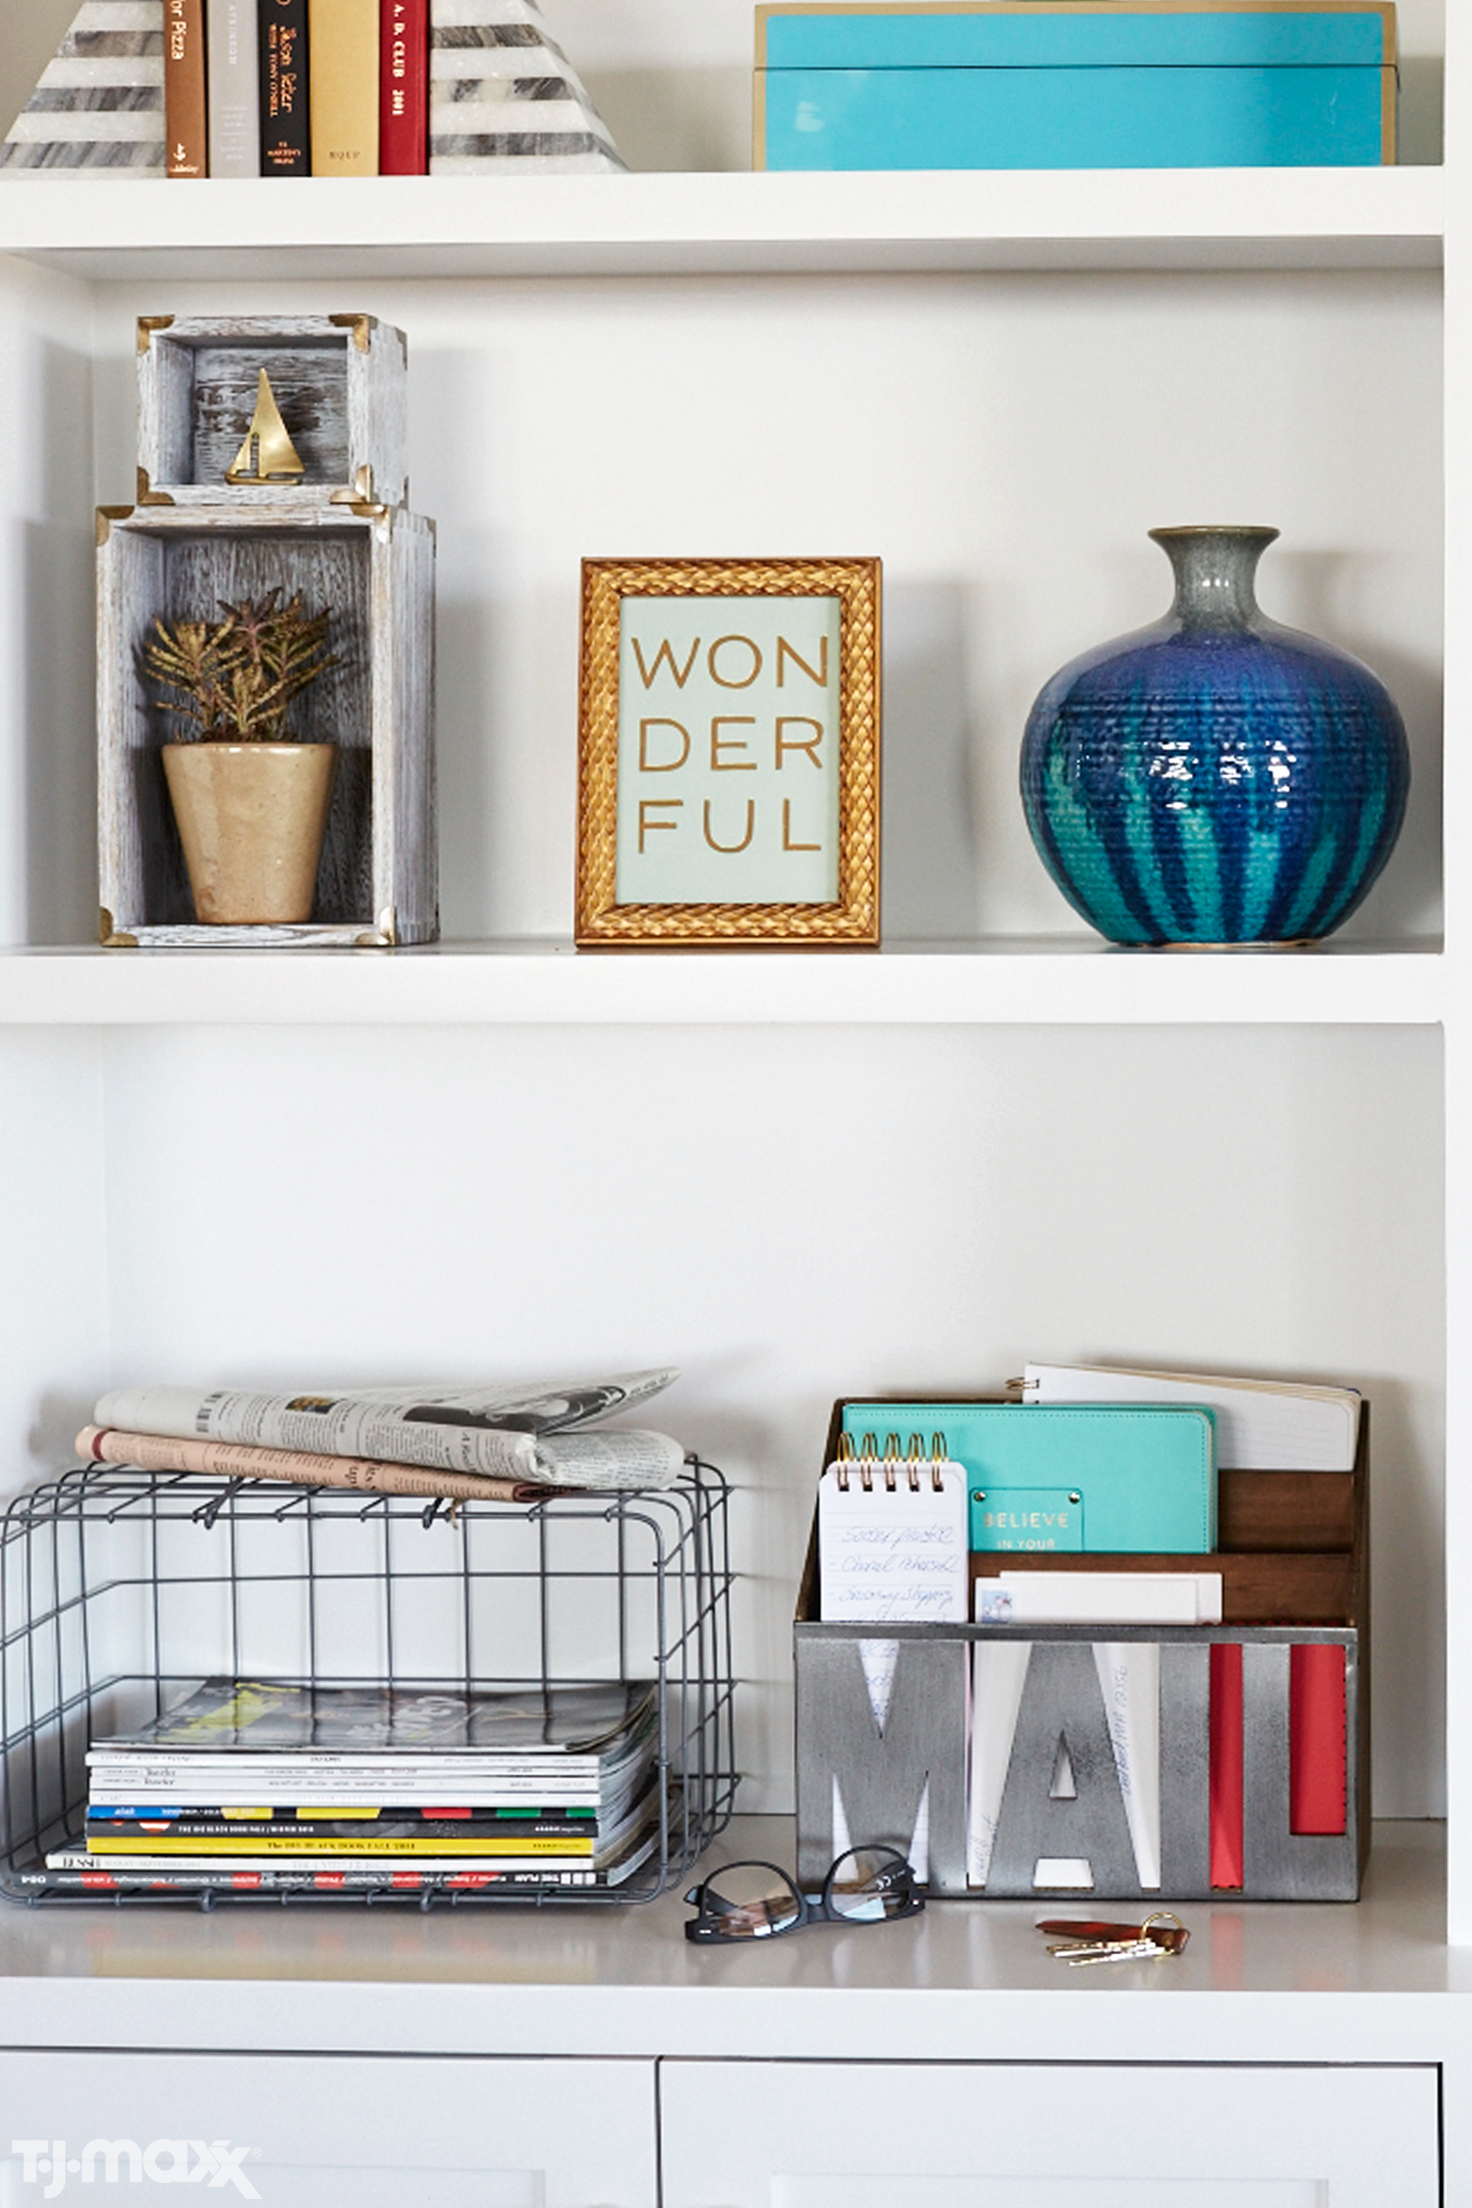 How to style a shelf use the majority of your shelving to display books